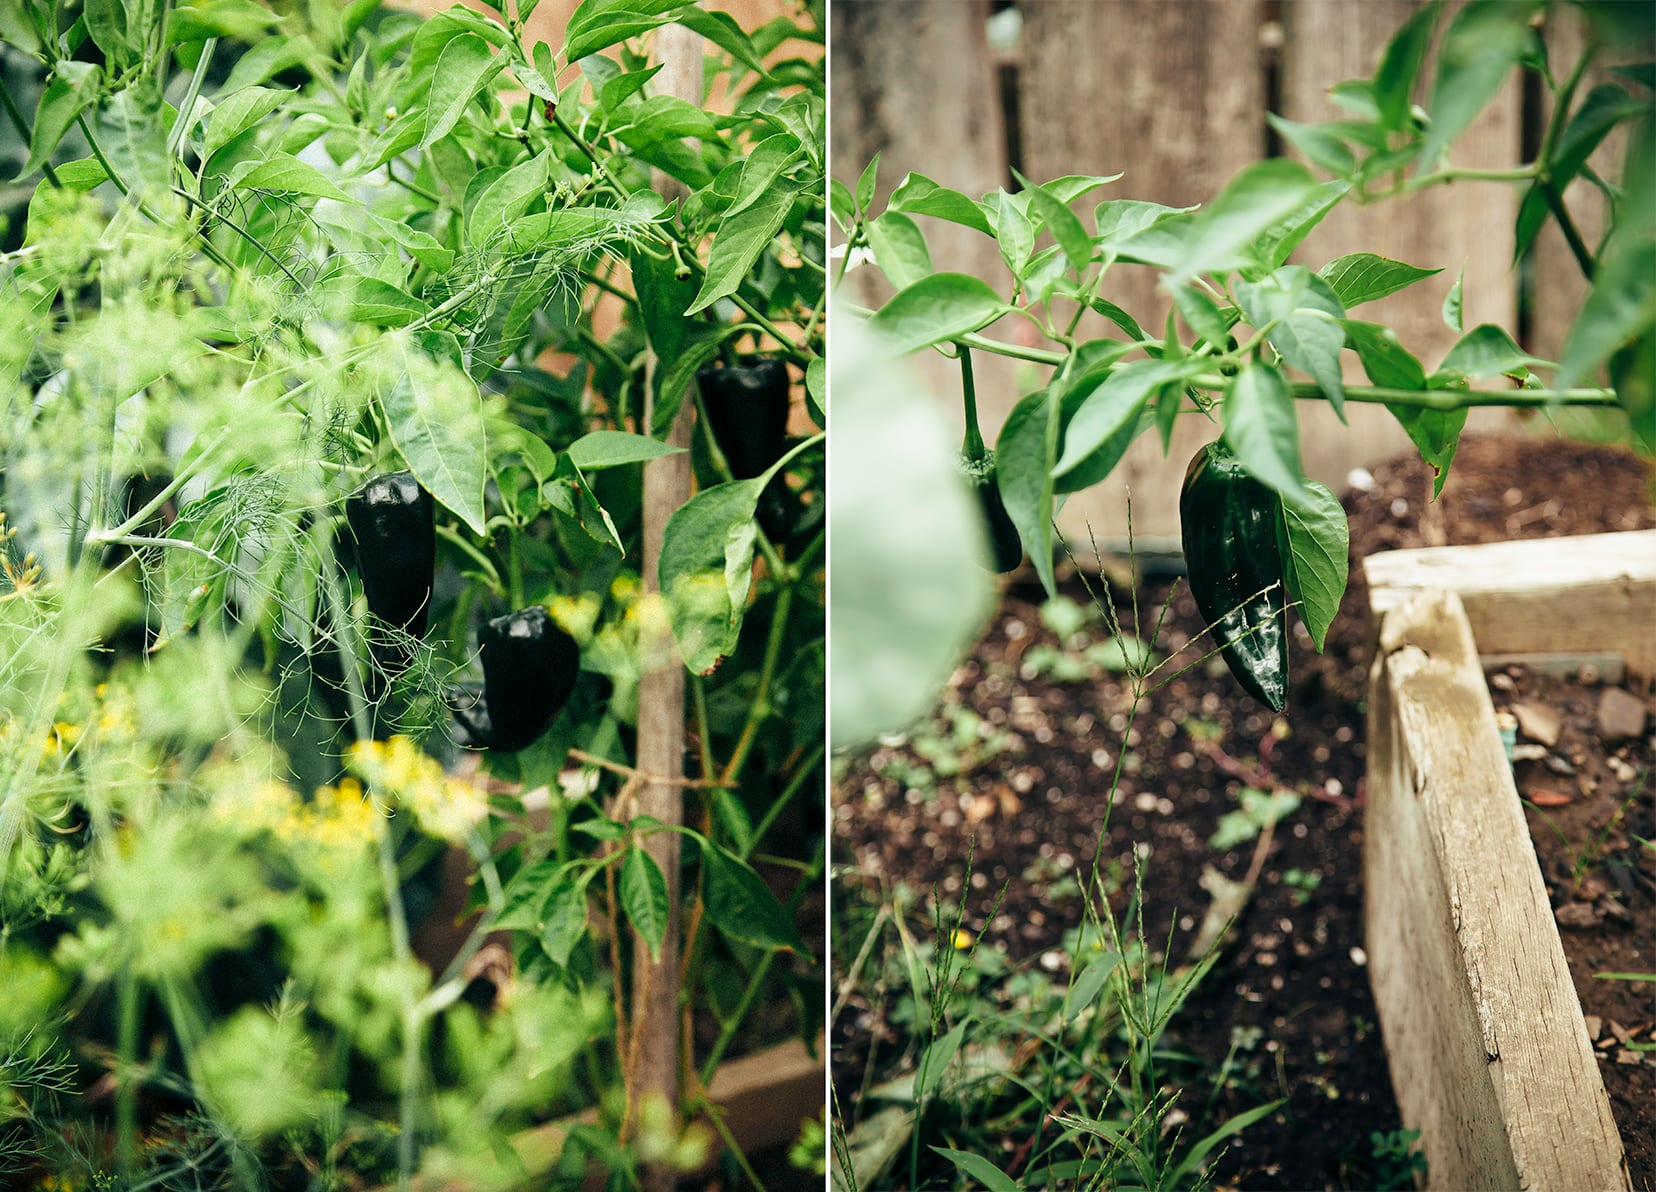 Two images show poblano pepper plants in a garden outside.